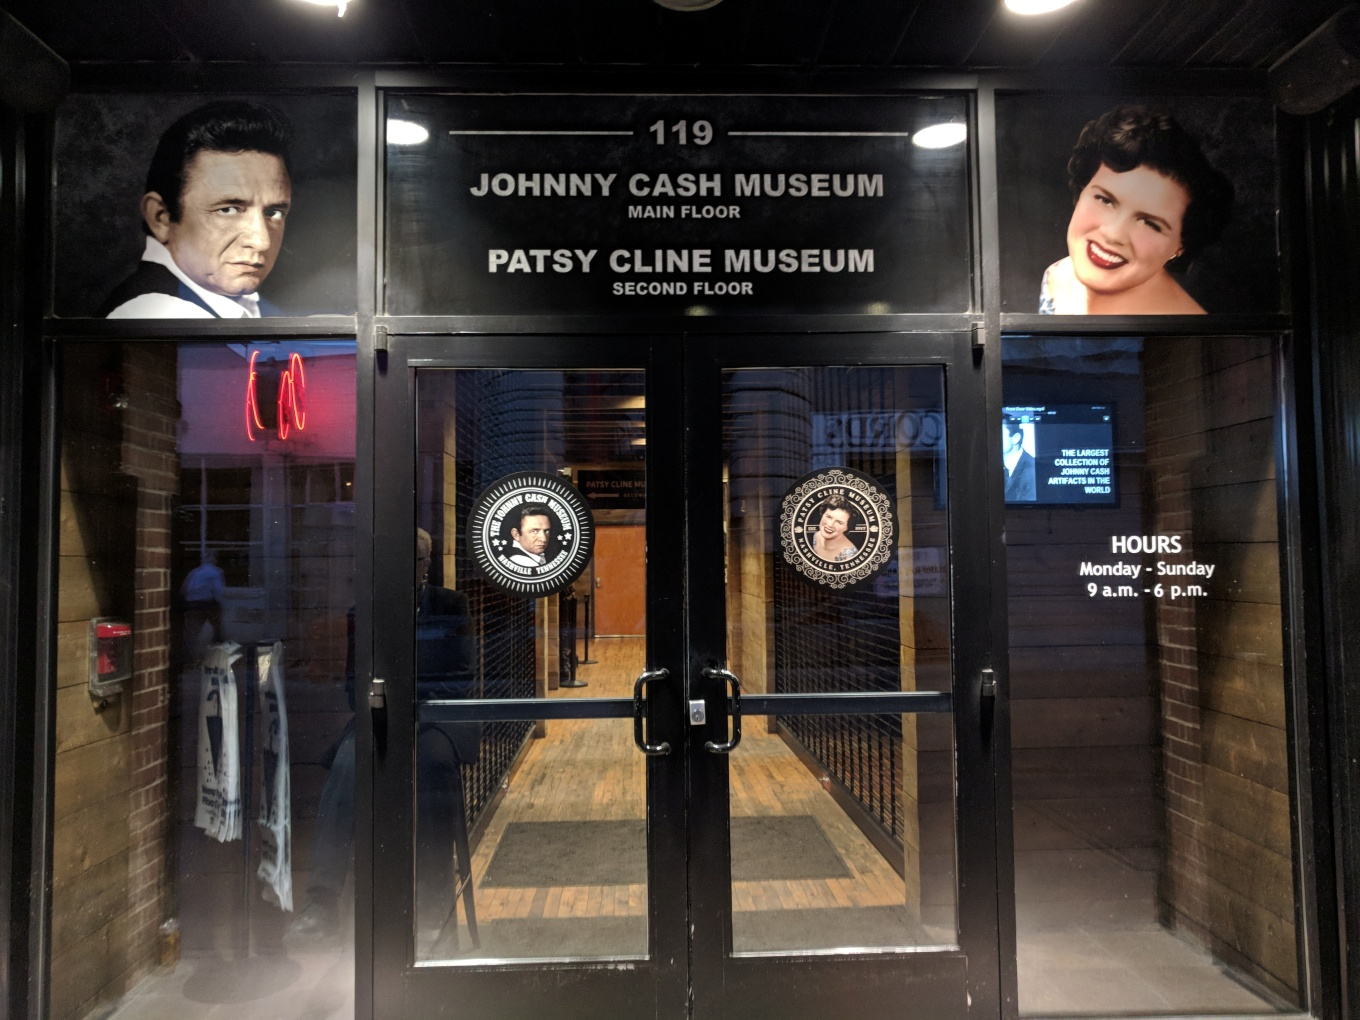 Johnny Cash Patsy Cline Museum CBC 2018 Nashville